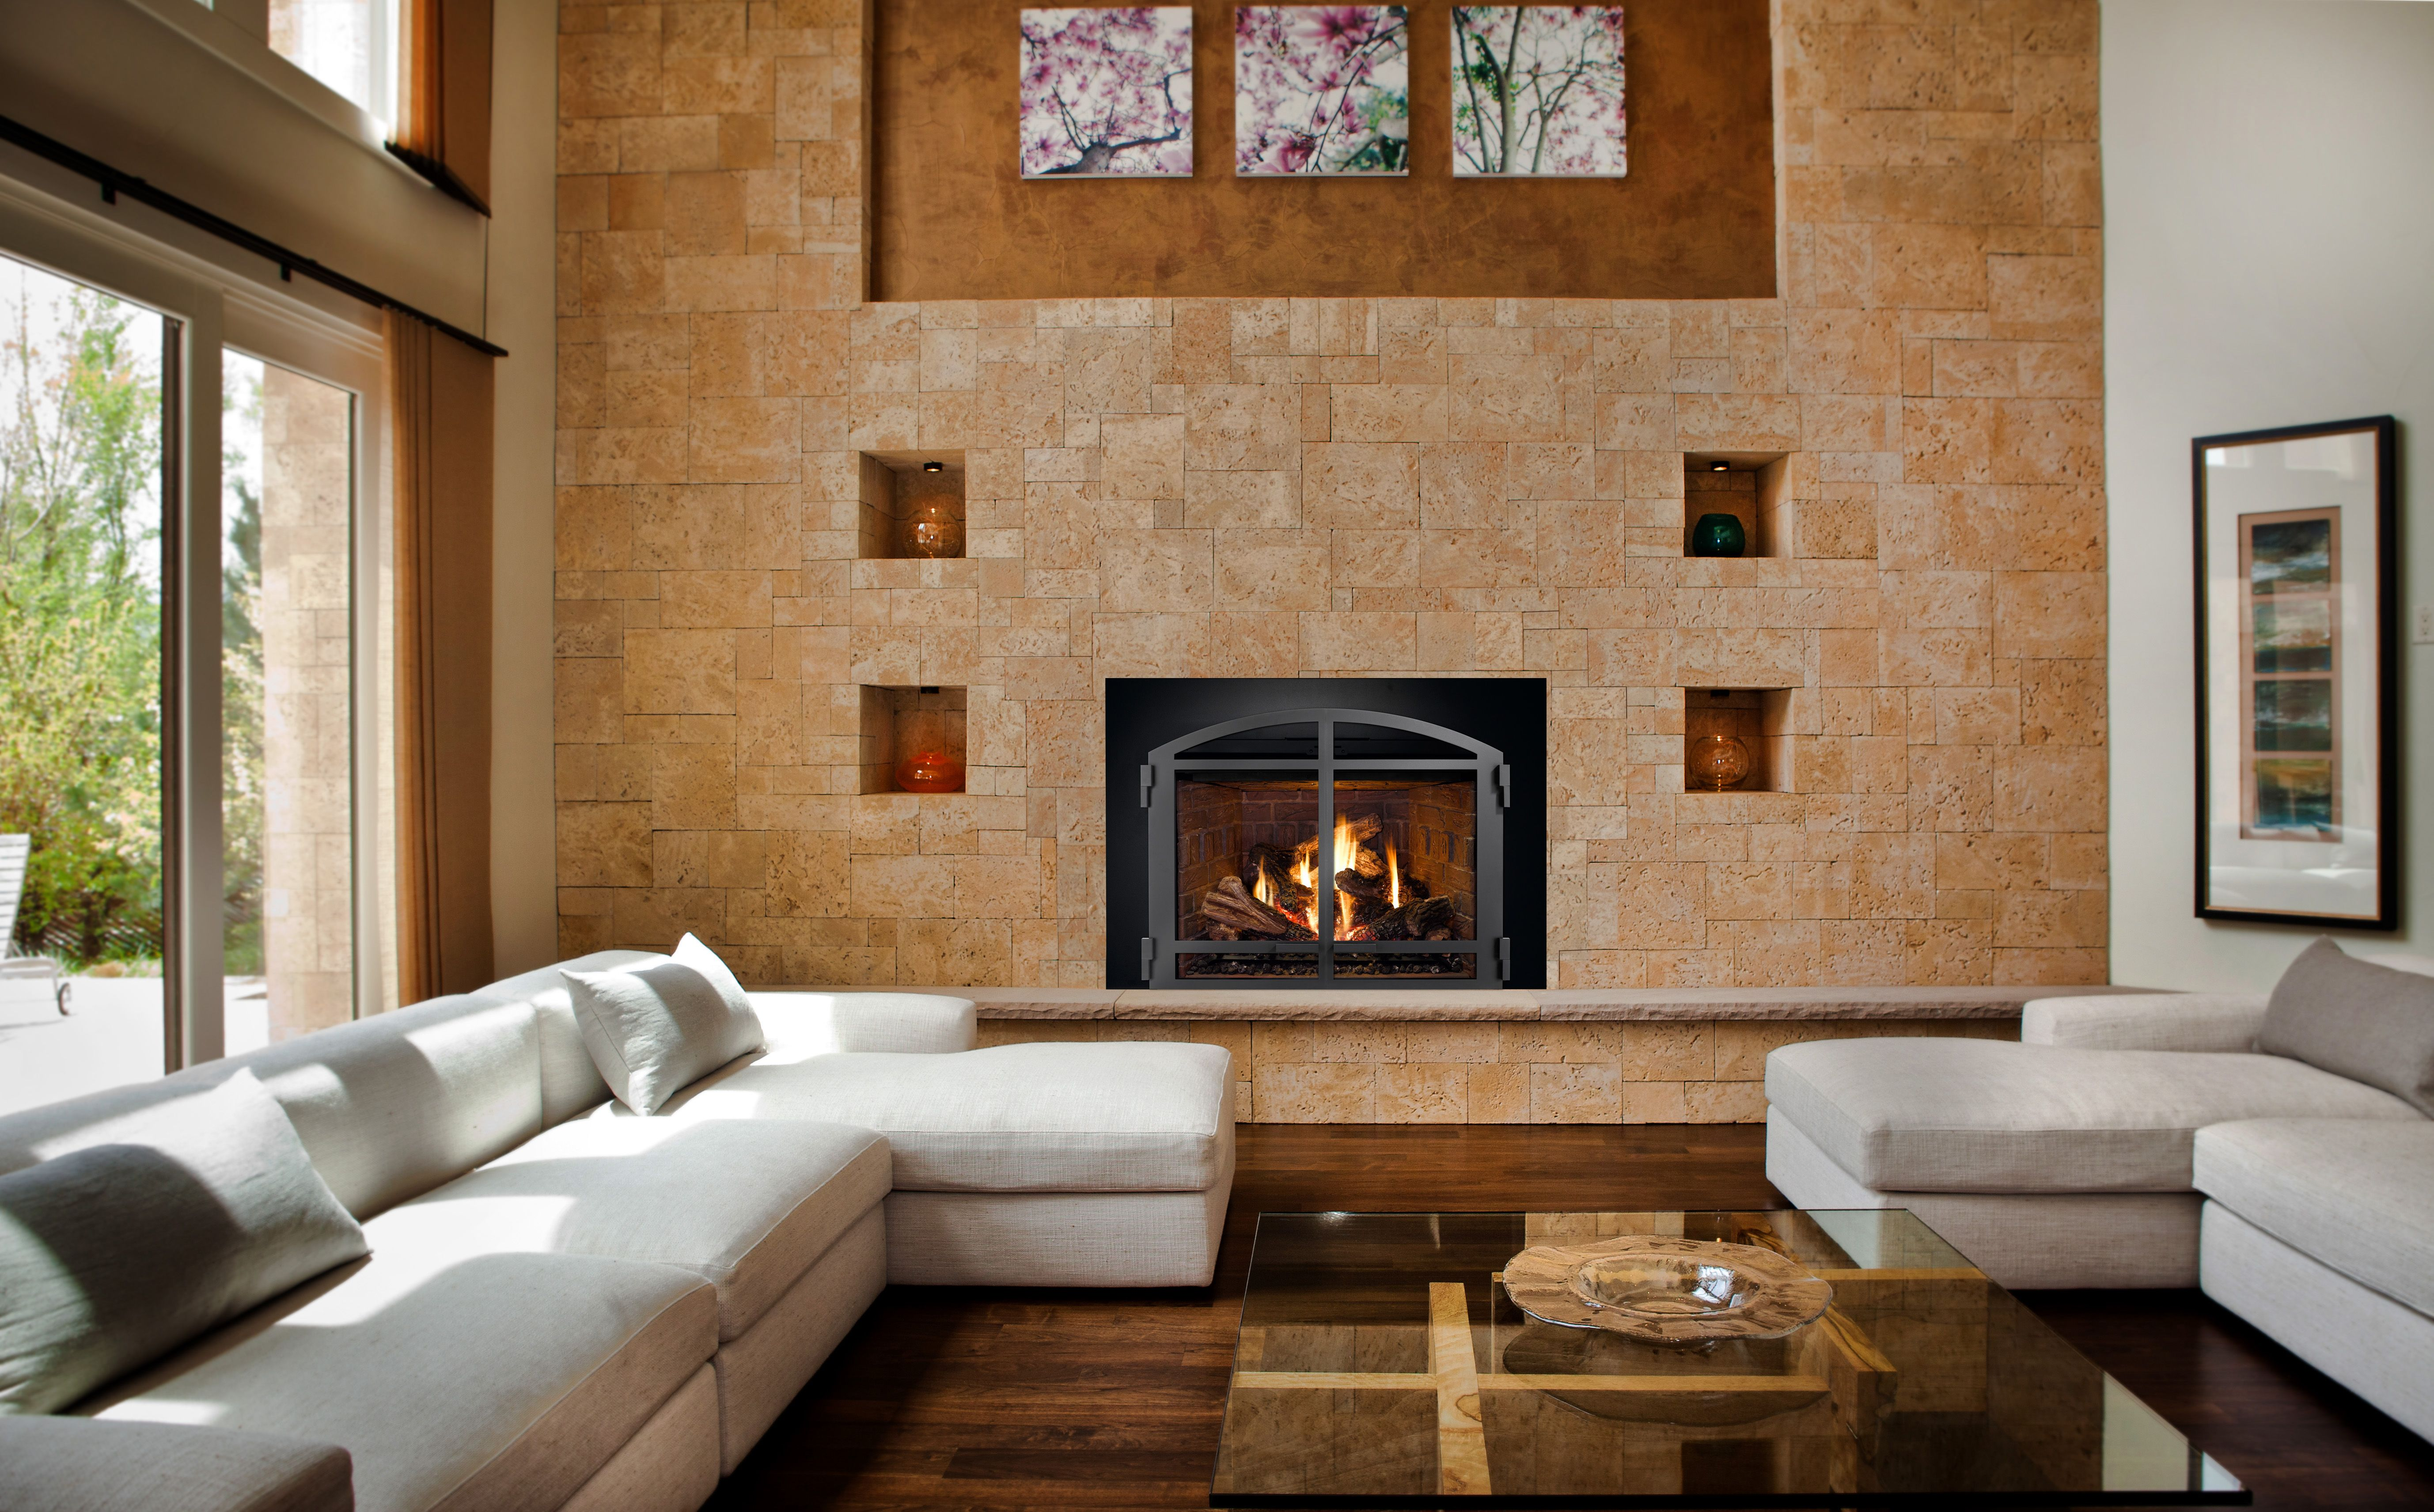 The Convenience Of A New Gas Insert Vs Old Wood Burning Fireplace Gas Fireplace Insert Fireplace Gas Fireplace